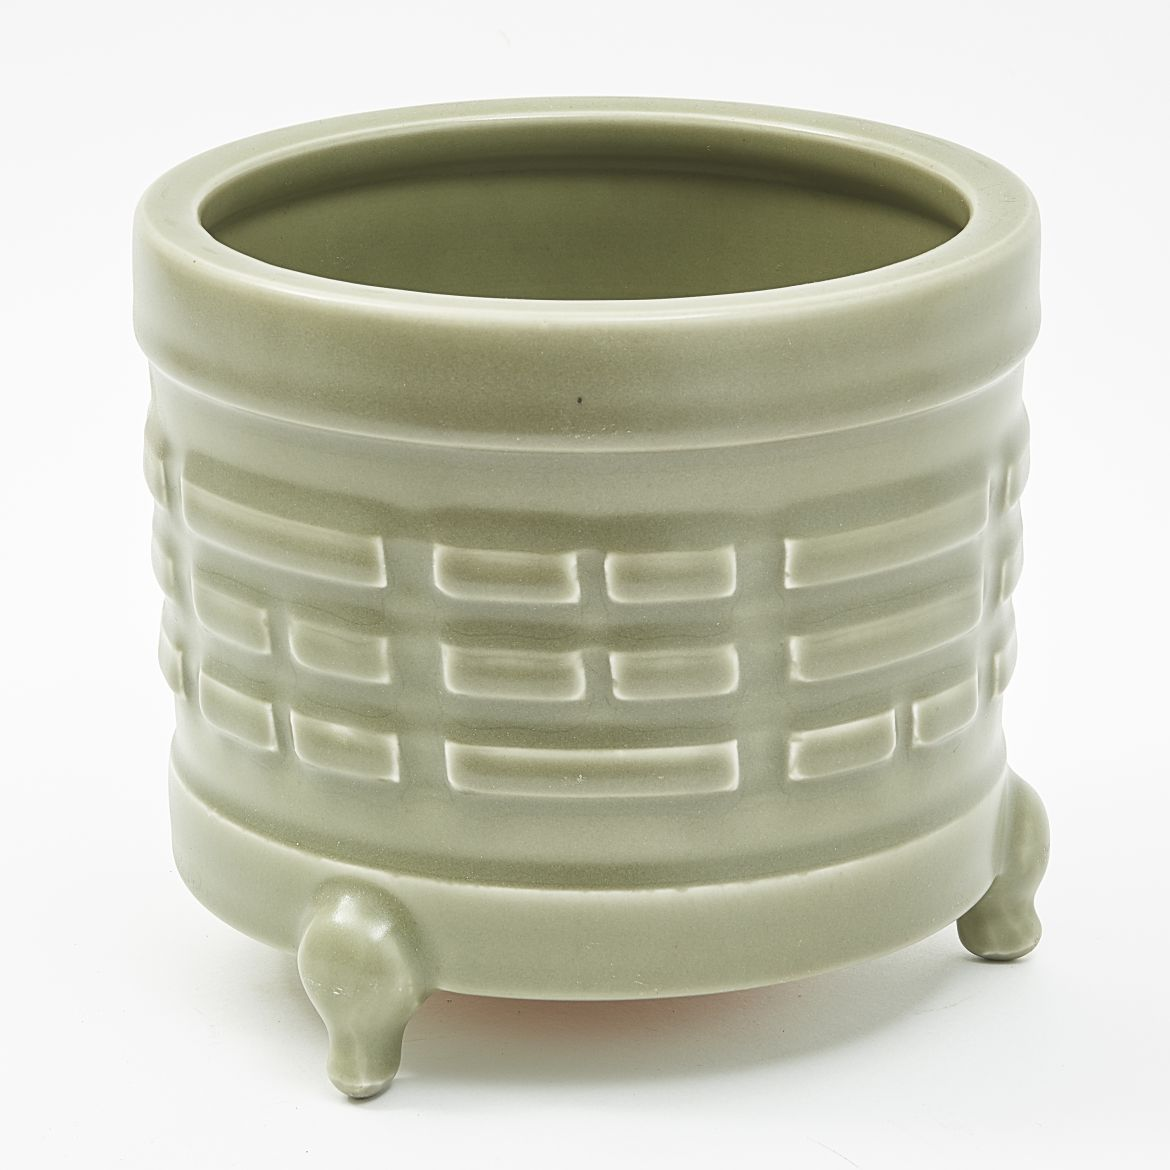 Chinese Celadon Glaze Incense Burner